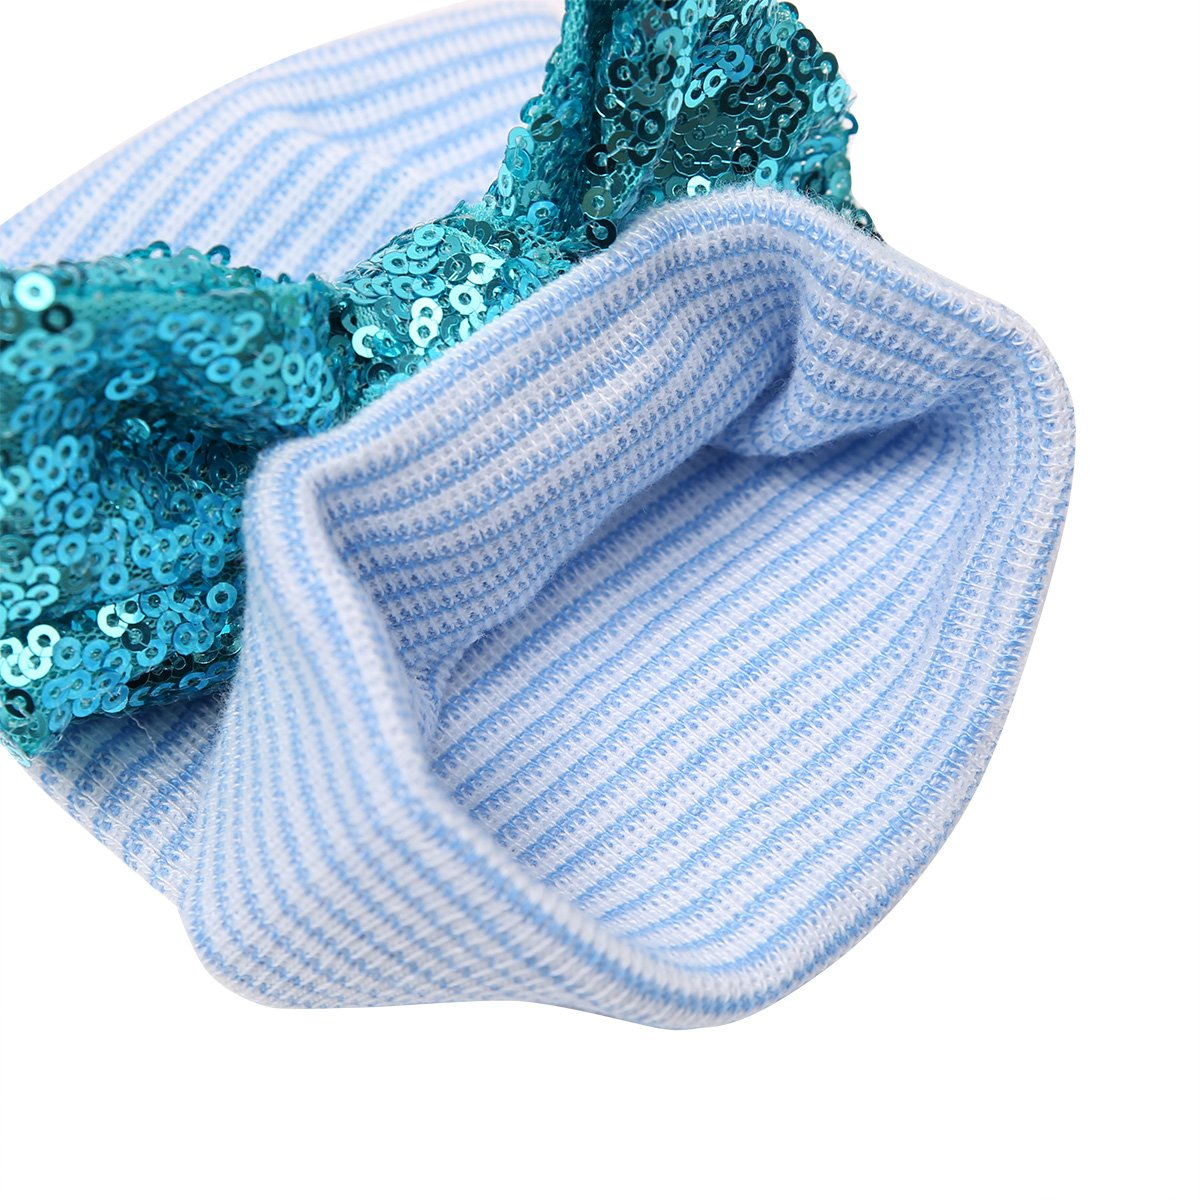 iEFiEL Newborn Babys Cotton Bling Bow Soft Hospital Beanie Push Gift Photo Props Hat